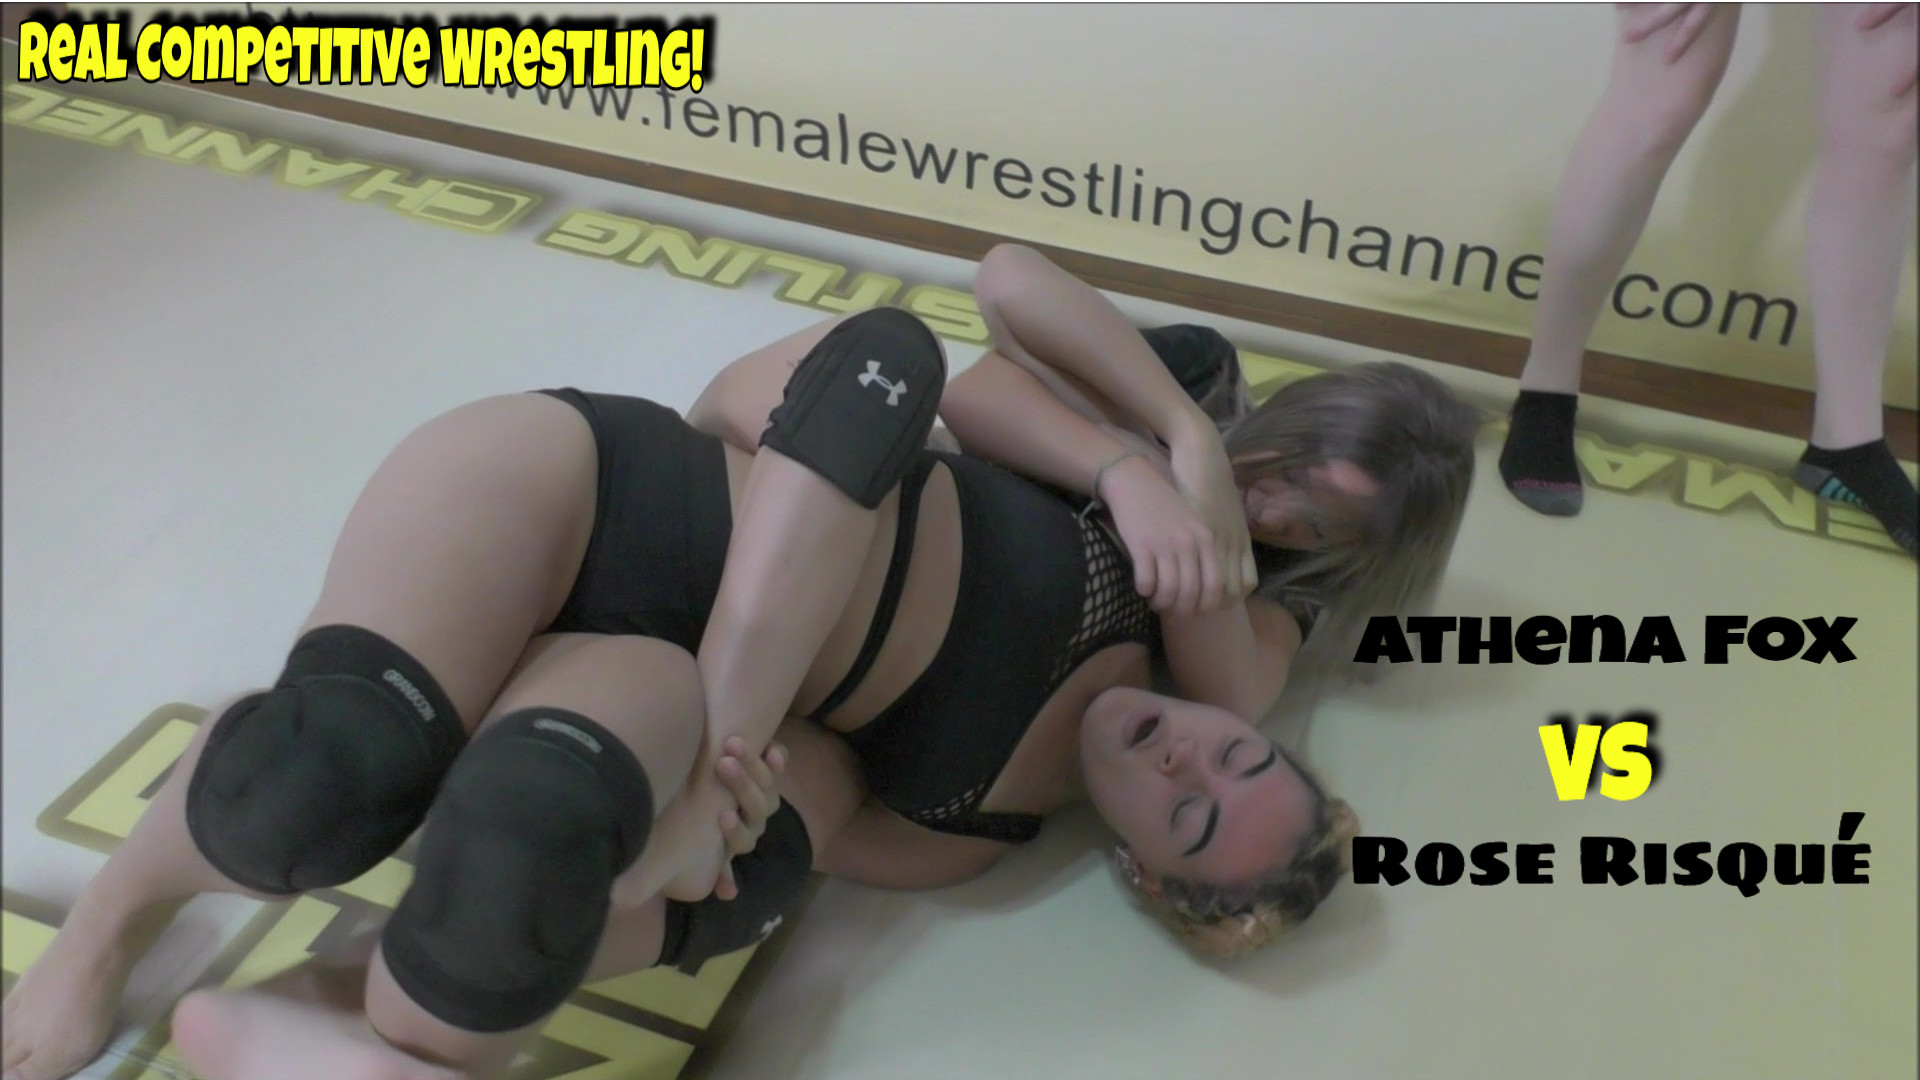 Athena Fox vs Rose Risque - #2 - (REAL) - 2019